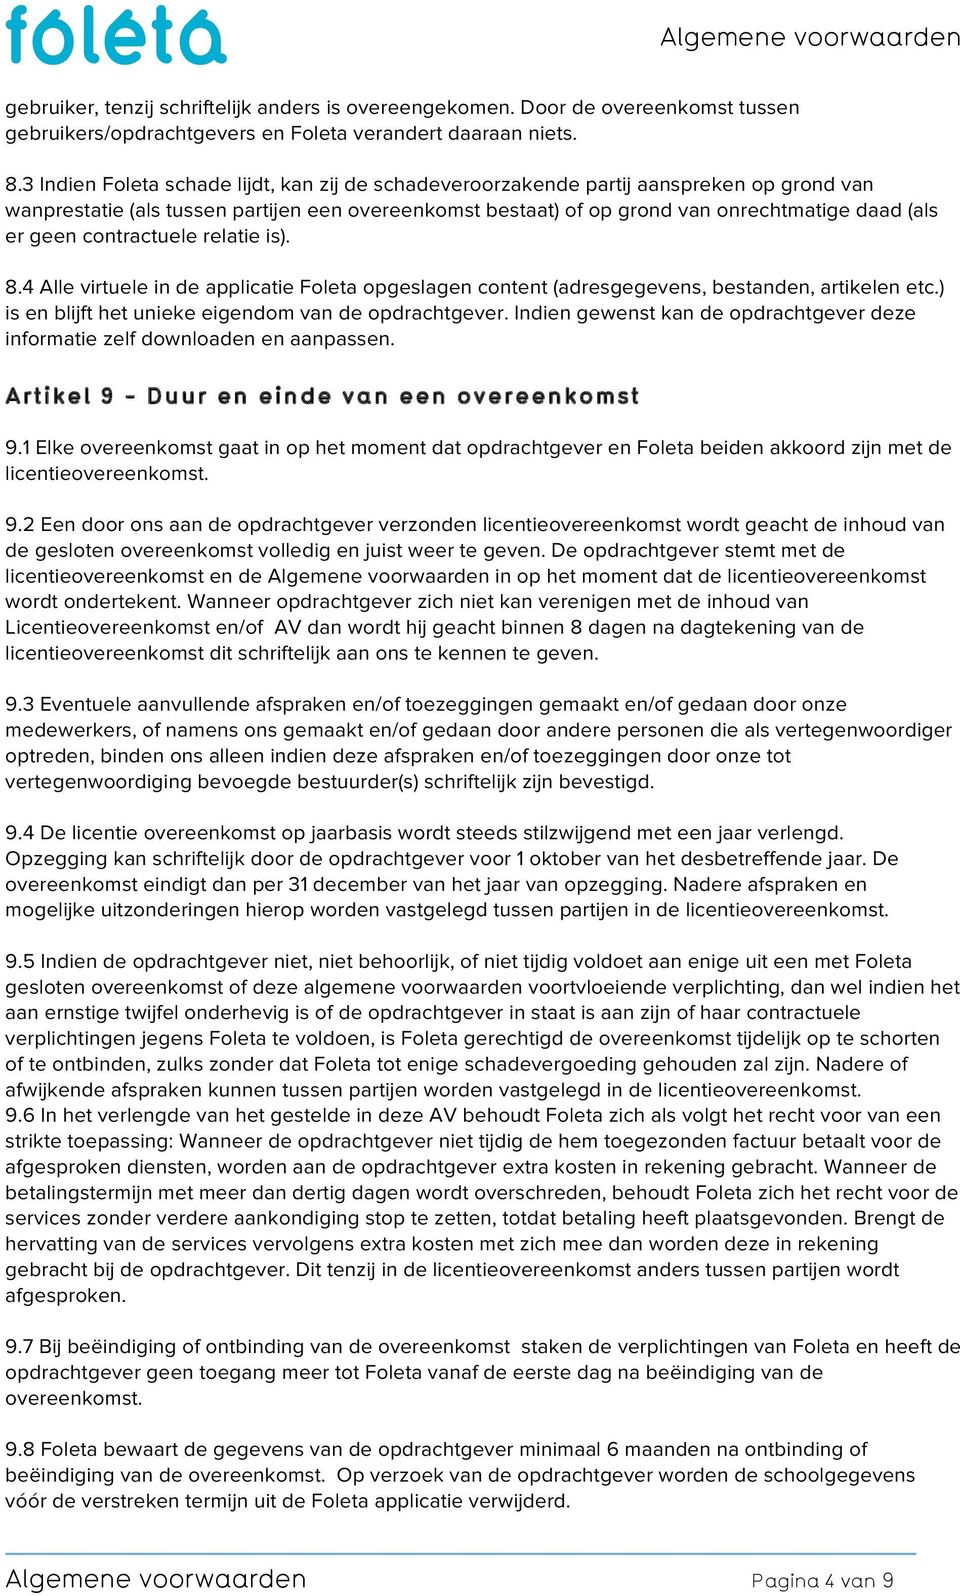 contractuele relatie is). 8.4 Alle virtuele in de applicatie Foleta opgeslagen content (adresgegevens, bestanden, artikelen etc.) is en blijft het unieke eigendom van de opdrachtgever.